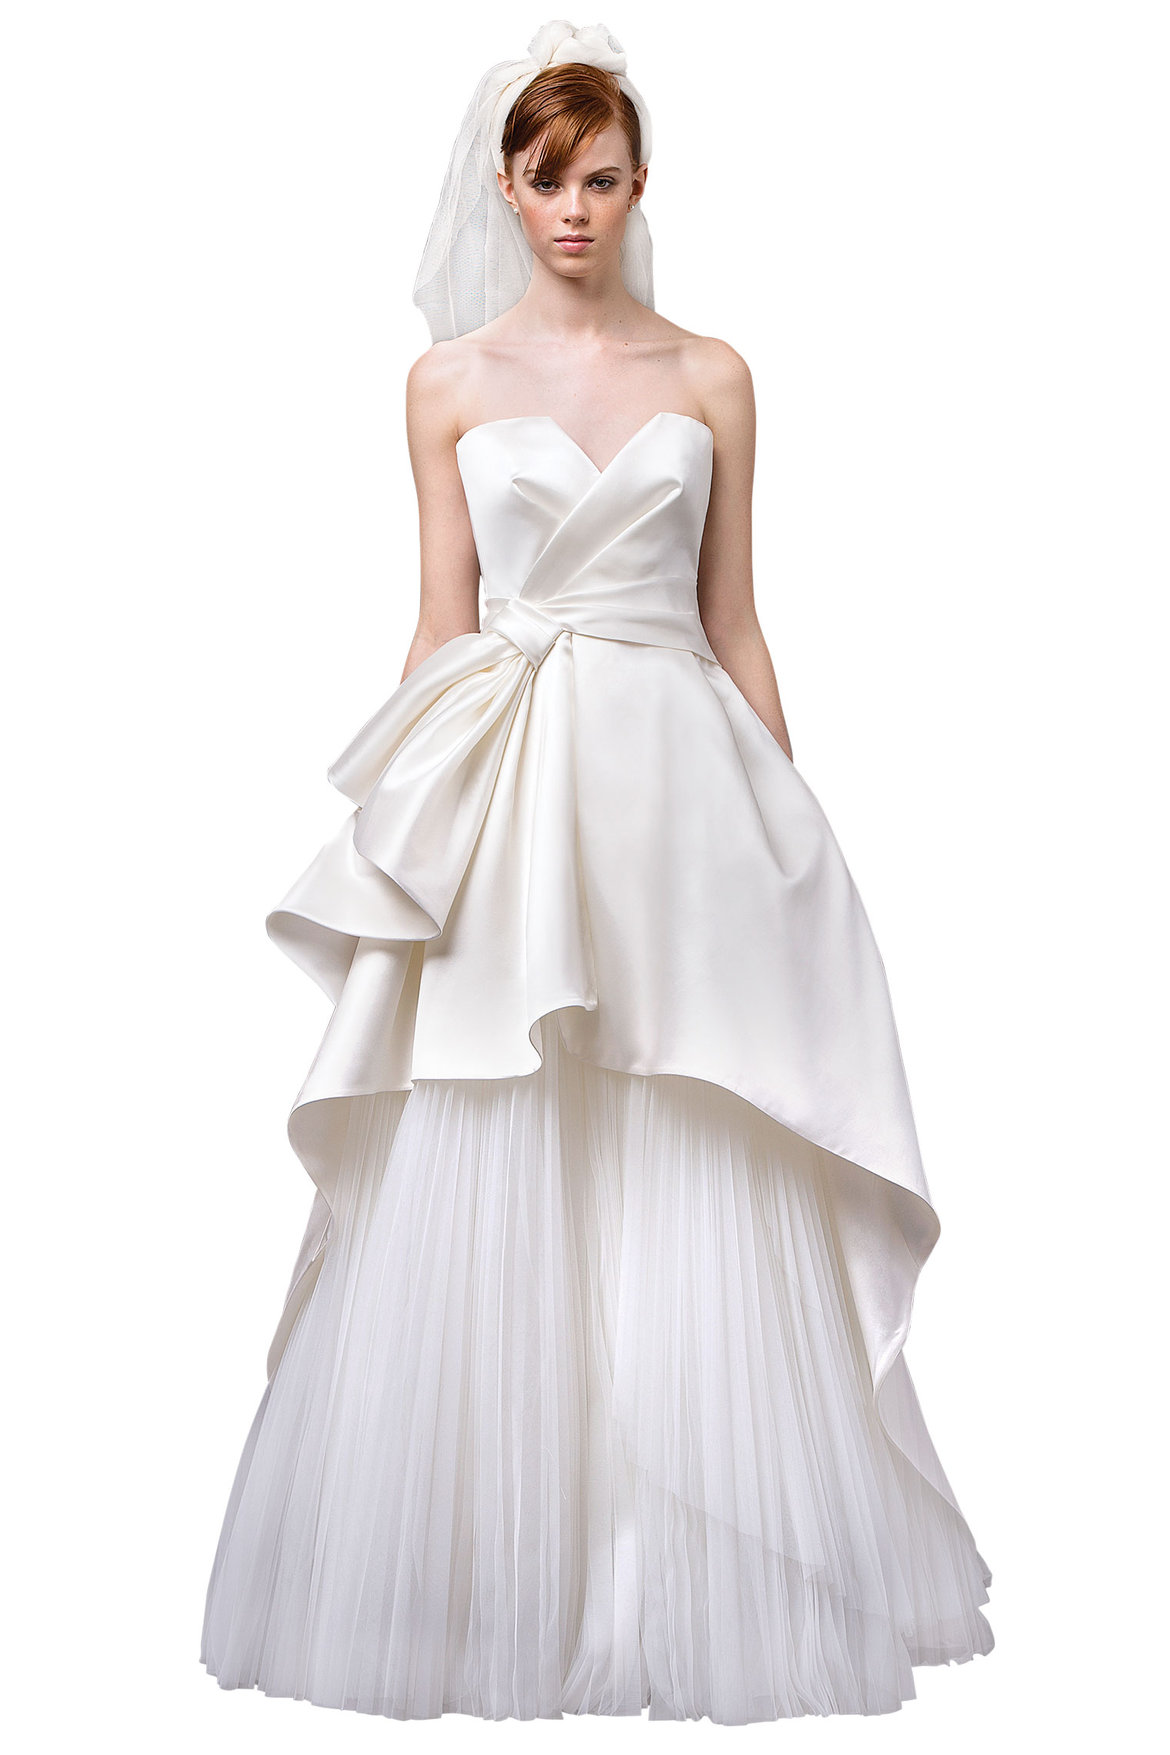 Alberti Ferretti Wedding Gown